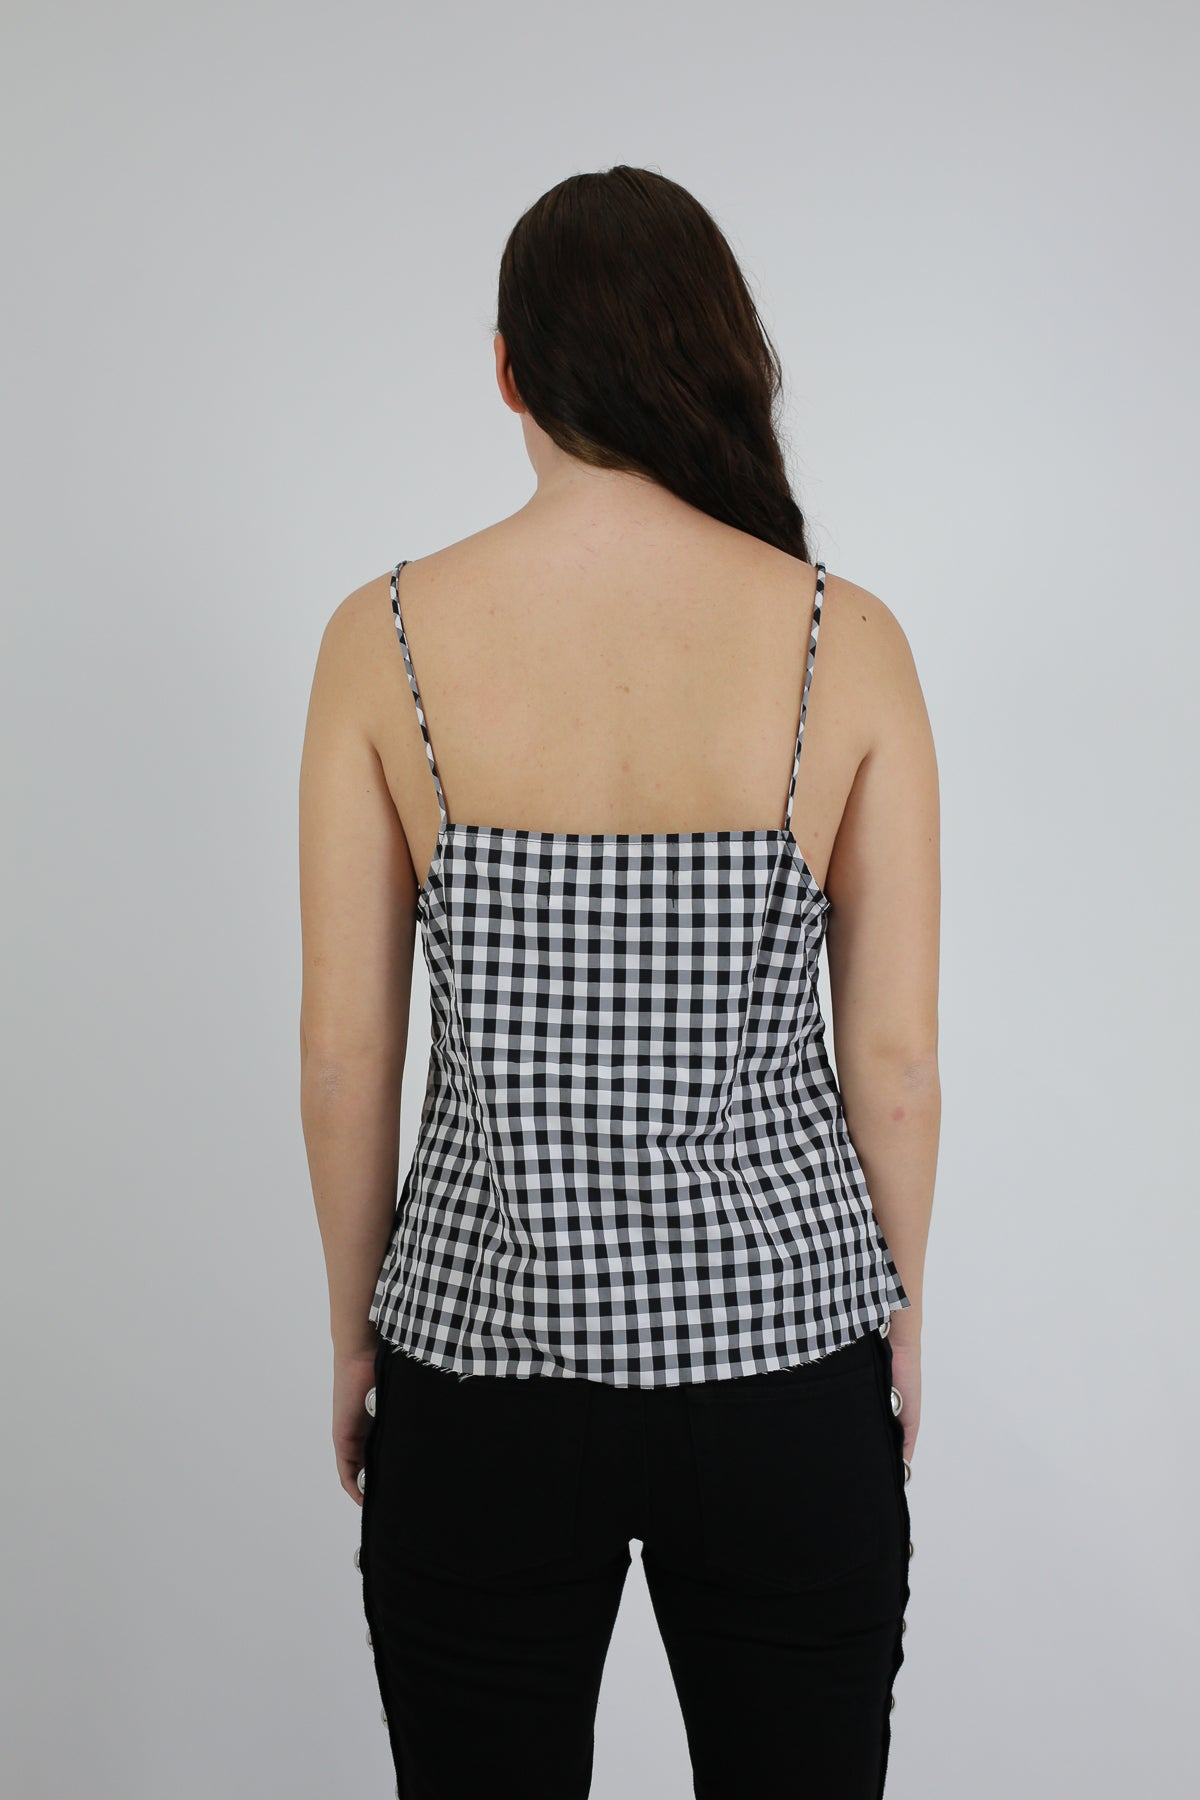 PRE-OWNED / BLACK & WHITE GINGHAM SLIP TOP - marques-almeida-dev